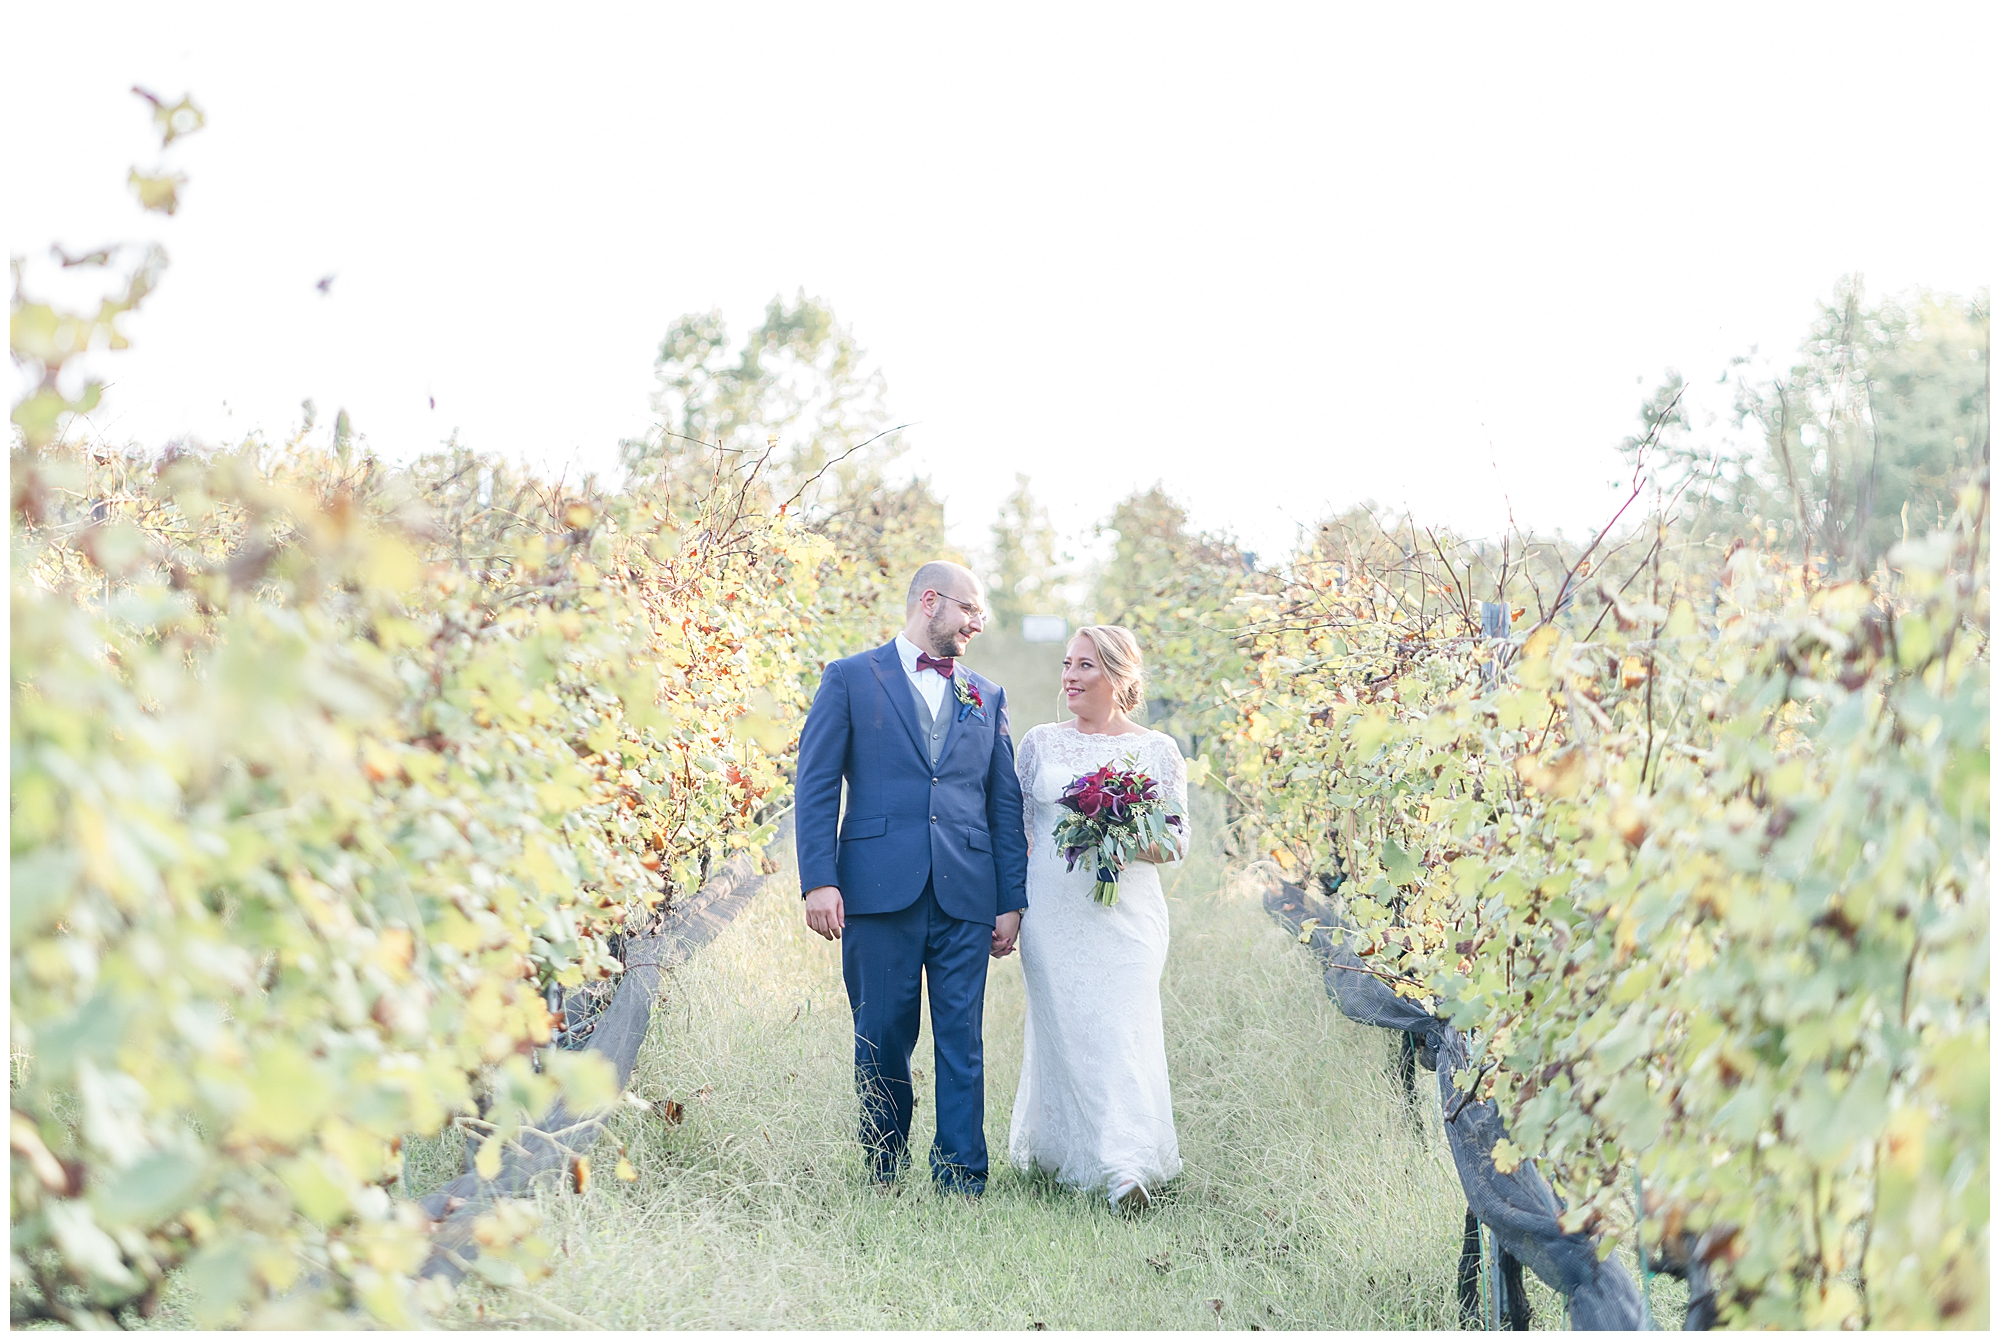 A bride and groom walk holding hands during their Wedding at Potomac Point Winery.